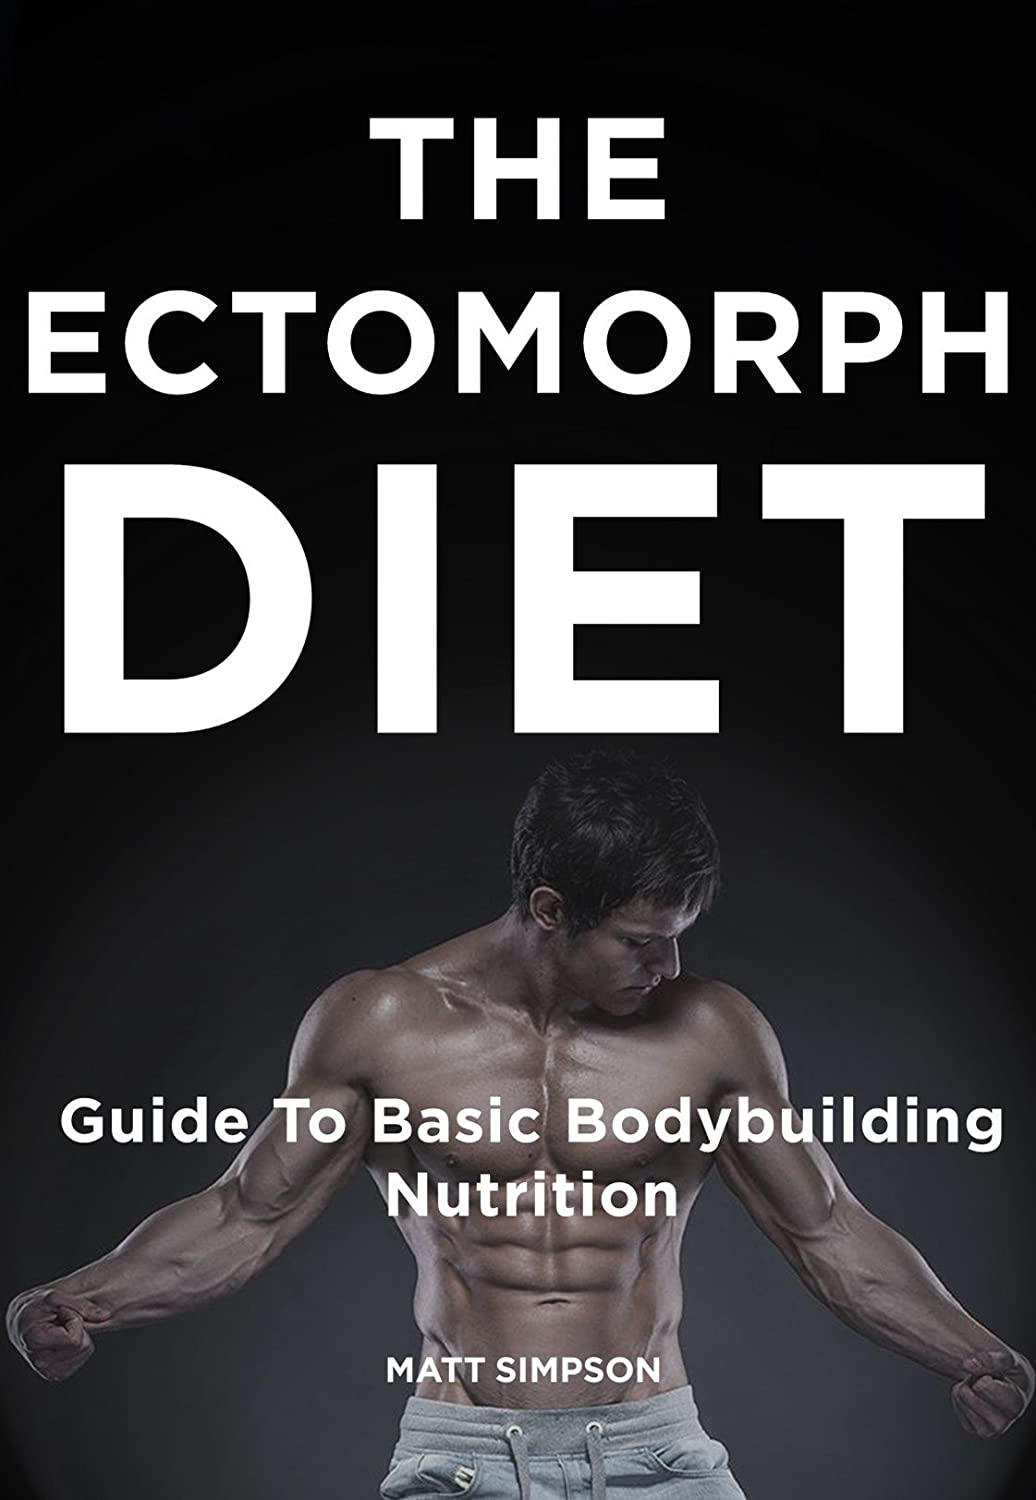 The Ectomorph Diet: Guide To Basic Bodybuilding Nutrition See more